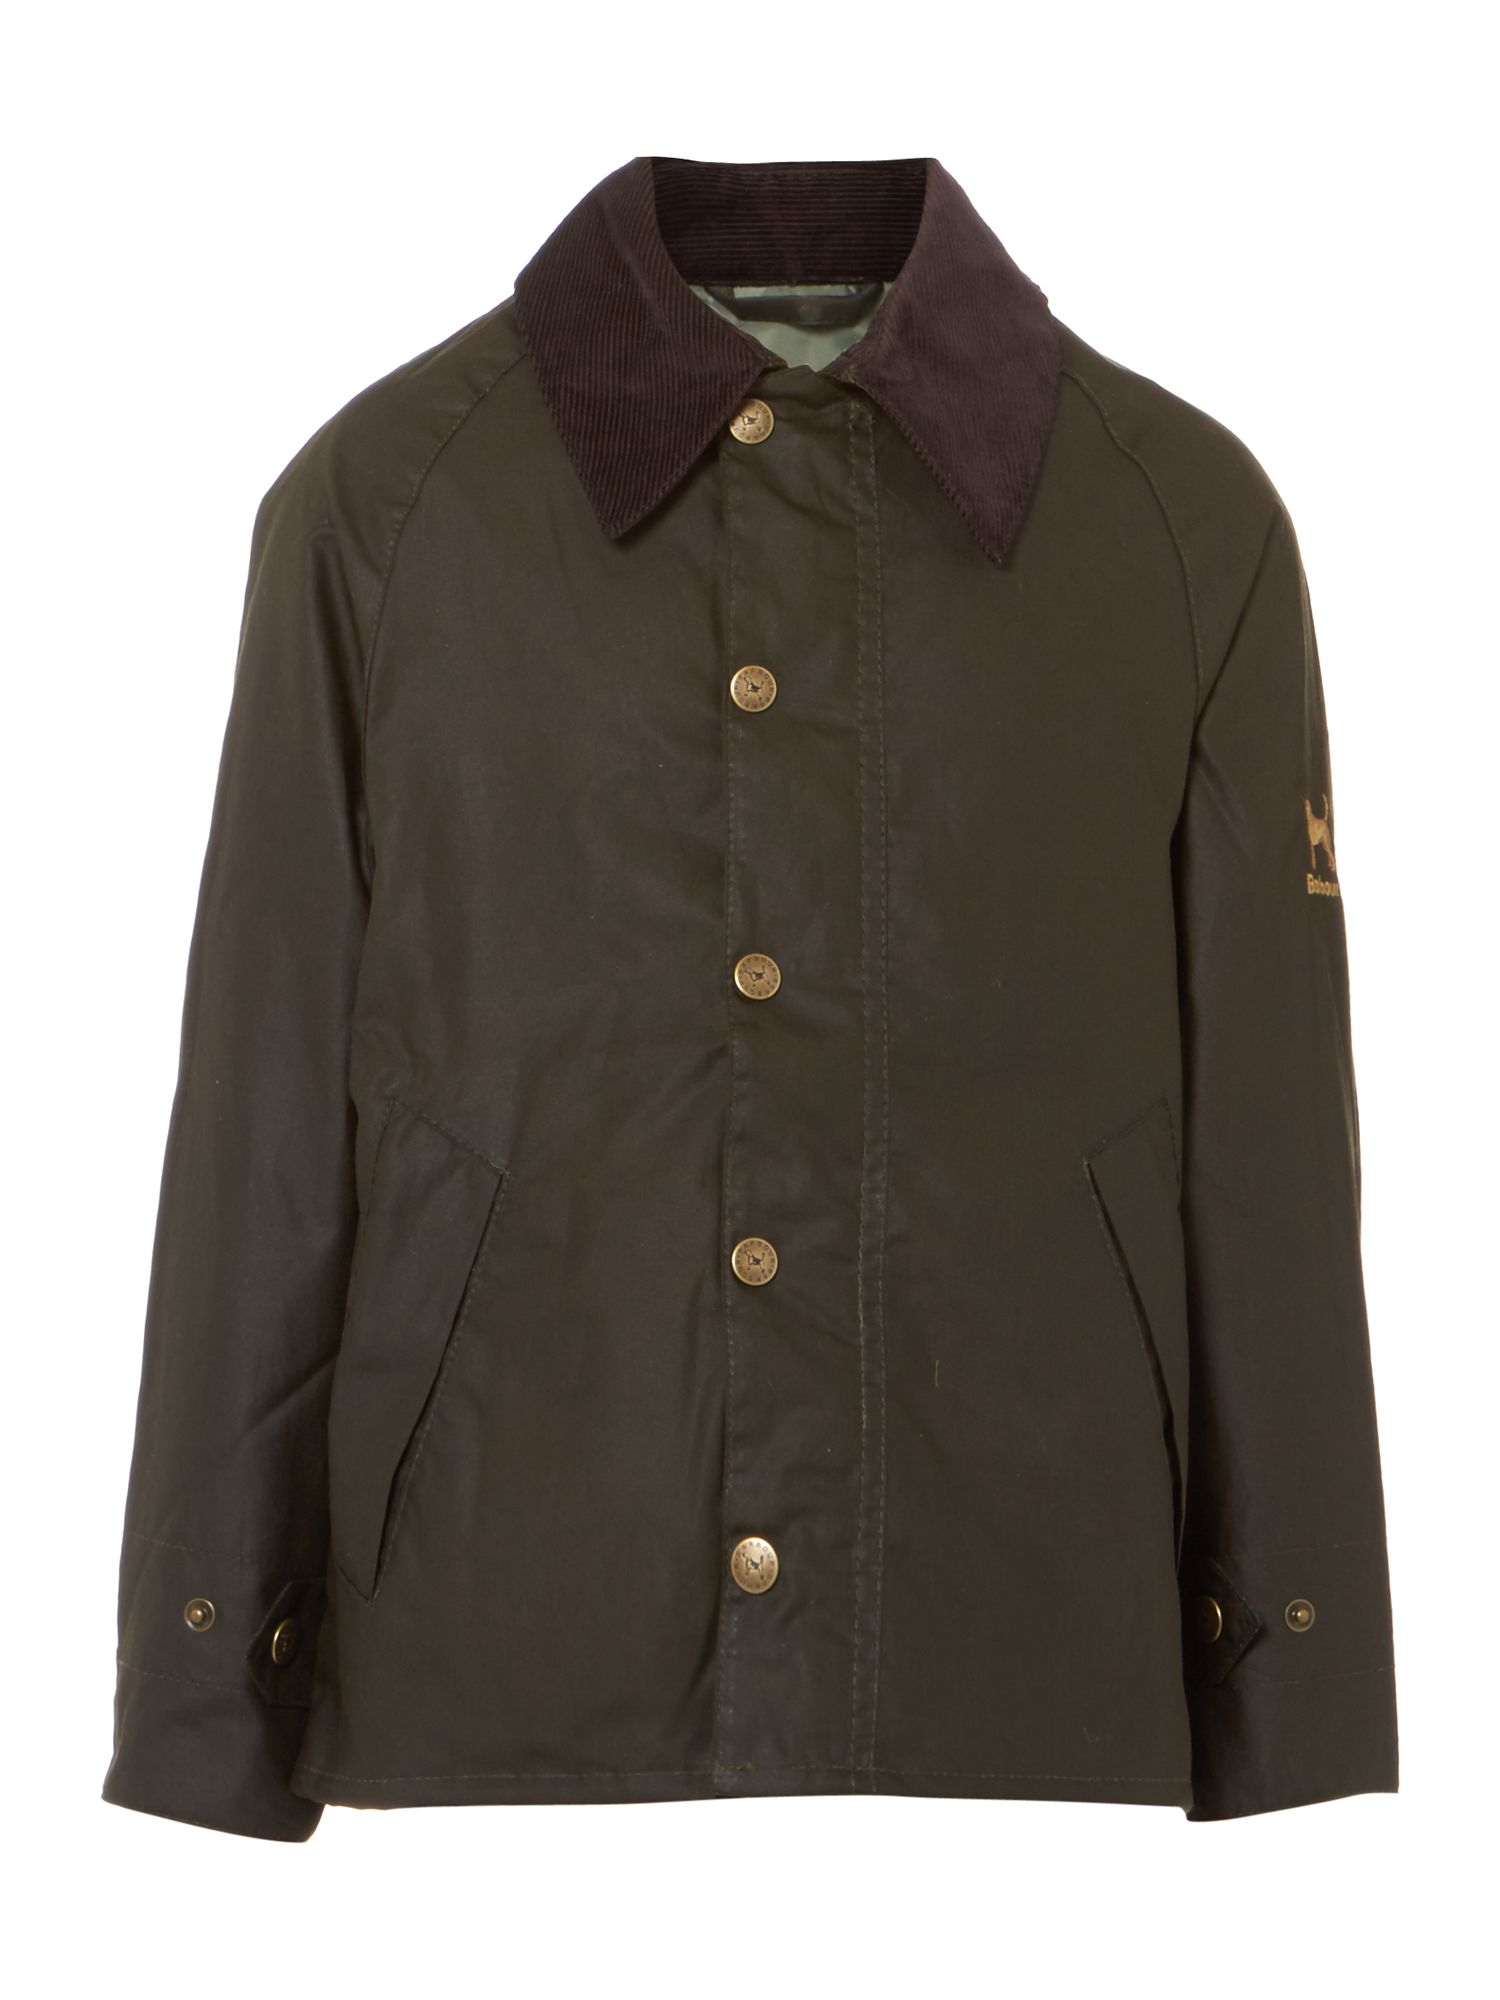 Boys Summer Transport wax jacket